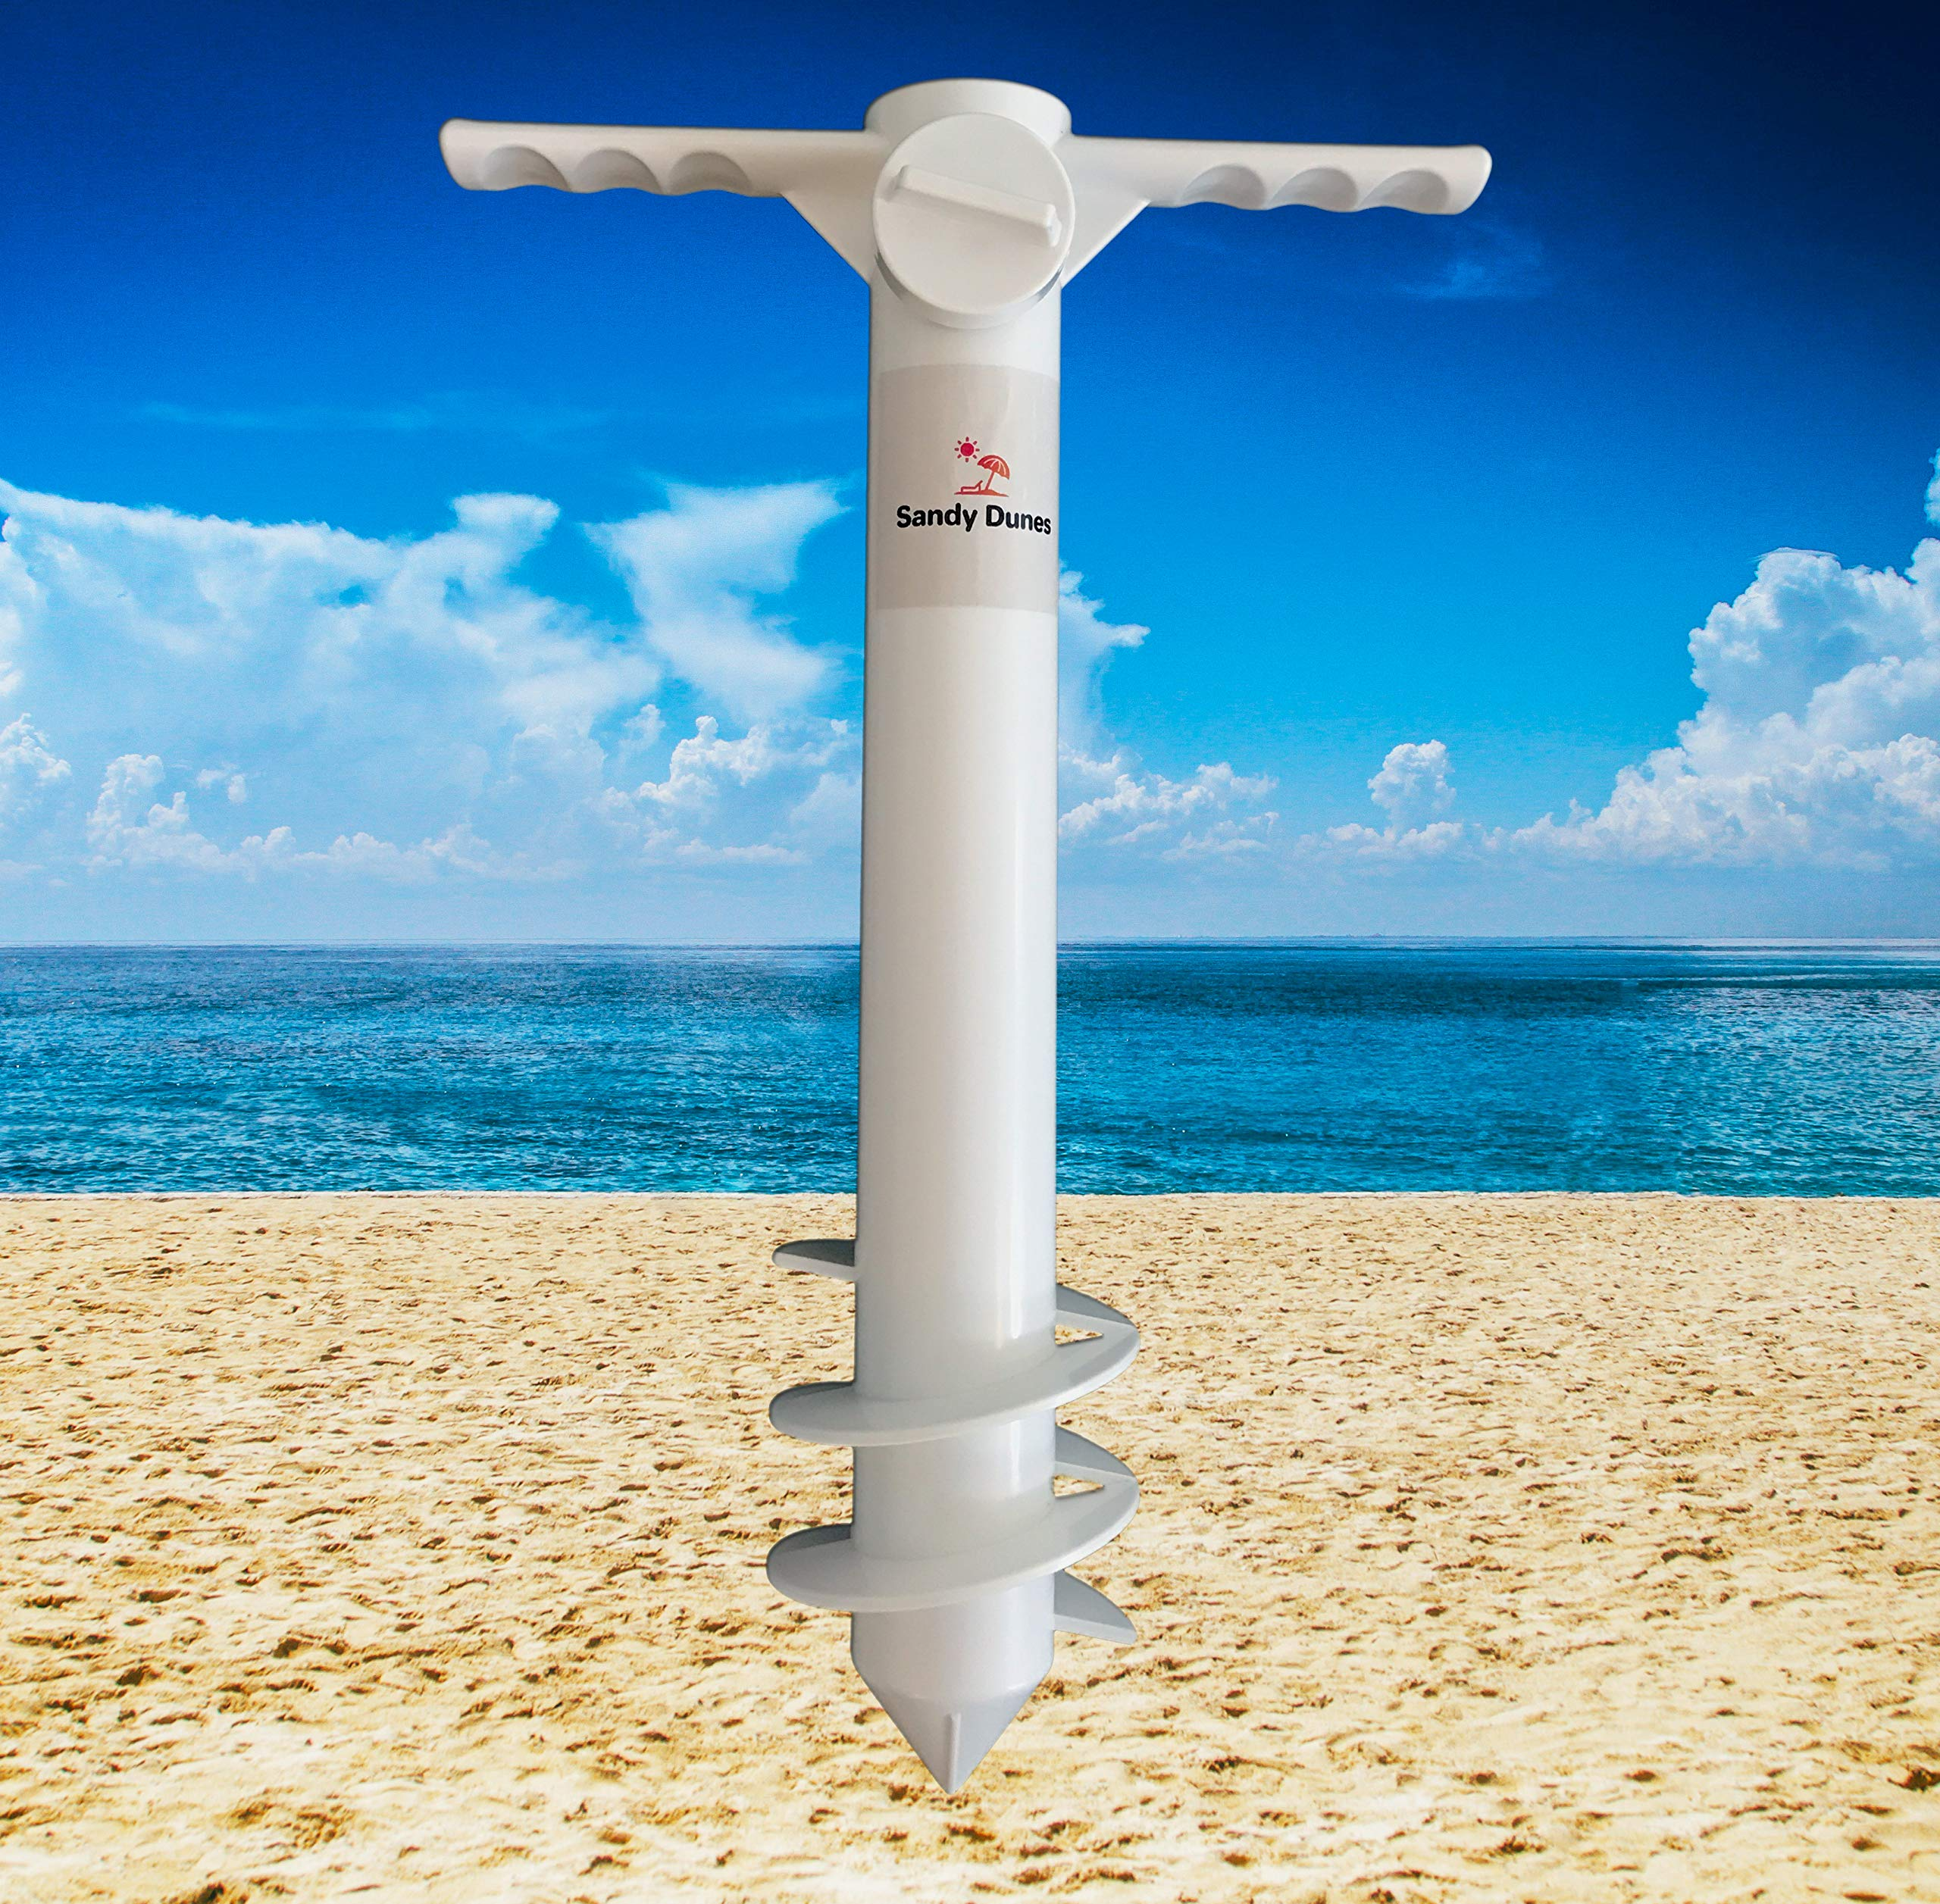 Sandy Dunes Beach Umbrella Sand Anchor | One-Size-Fits-All | Extra Strong, 3-Tier Screw To Withstand Tough Winds by Sandy Dunes